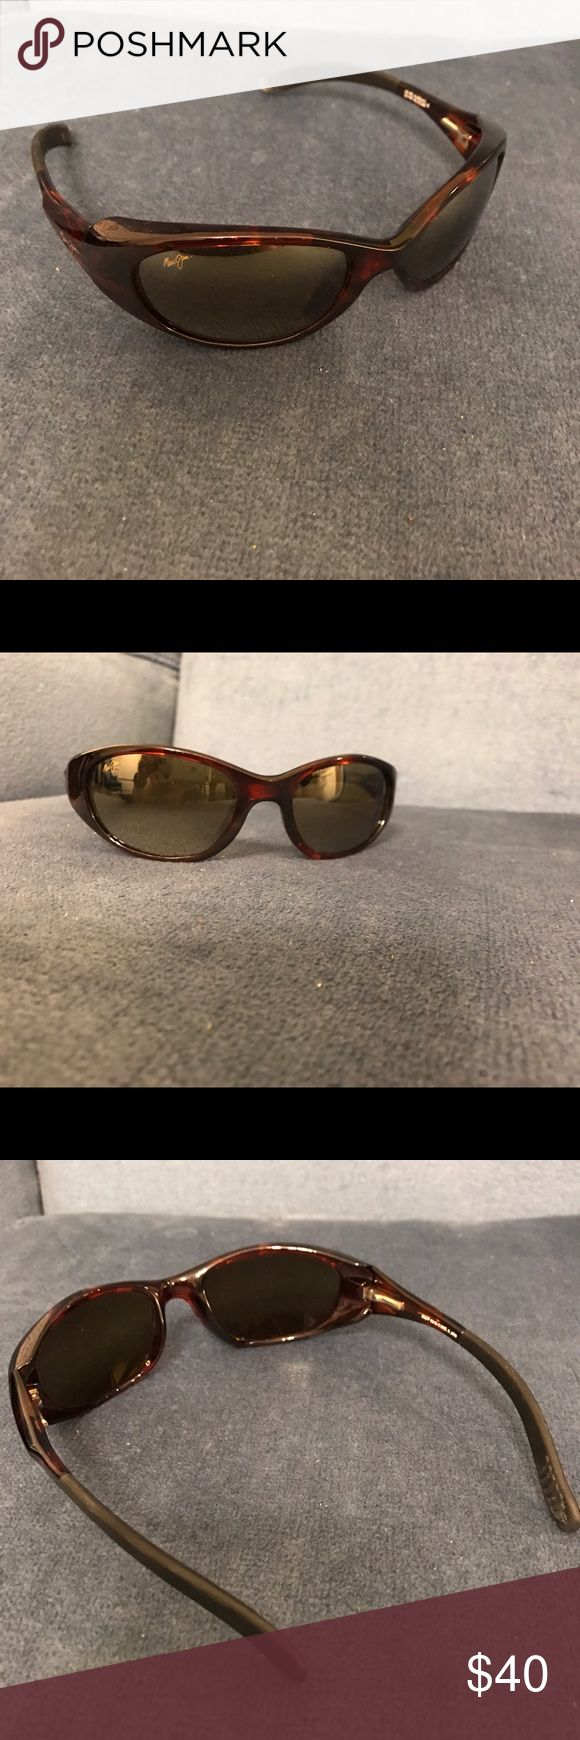 Maui Jim Sunglasses Cute and casual sunglasses! Worn a few times and in great condition. Maui Jim Accessories Sunglasses